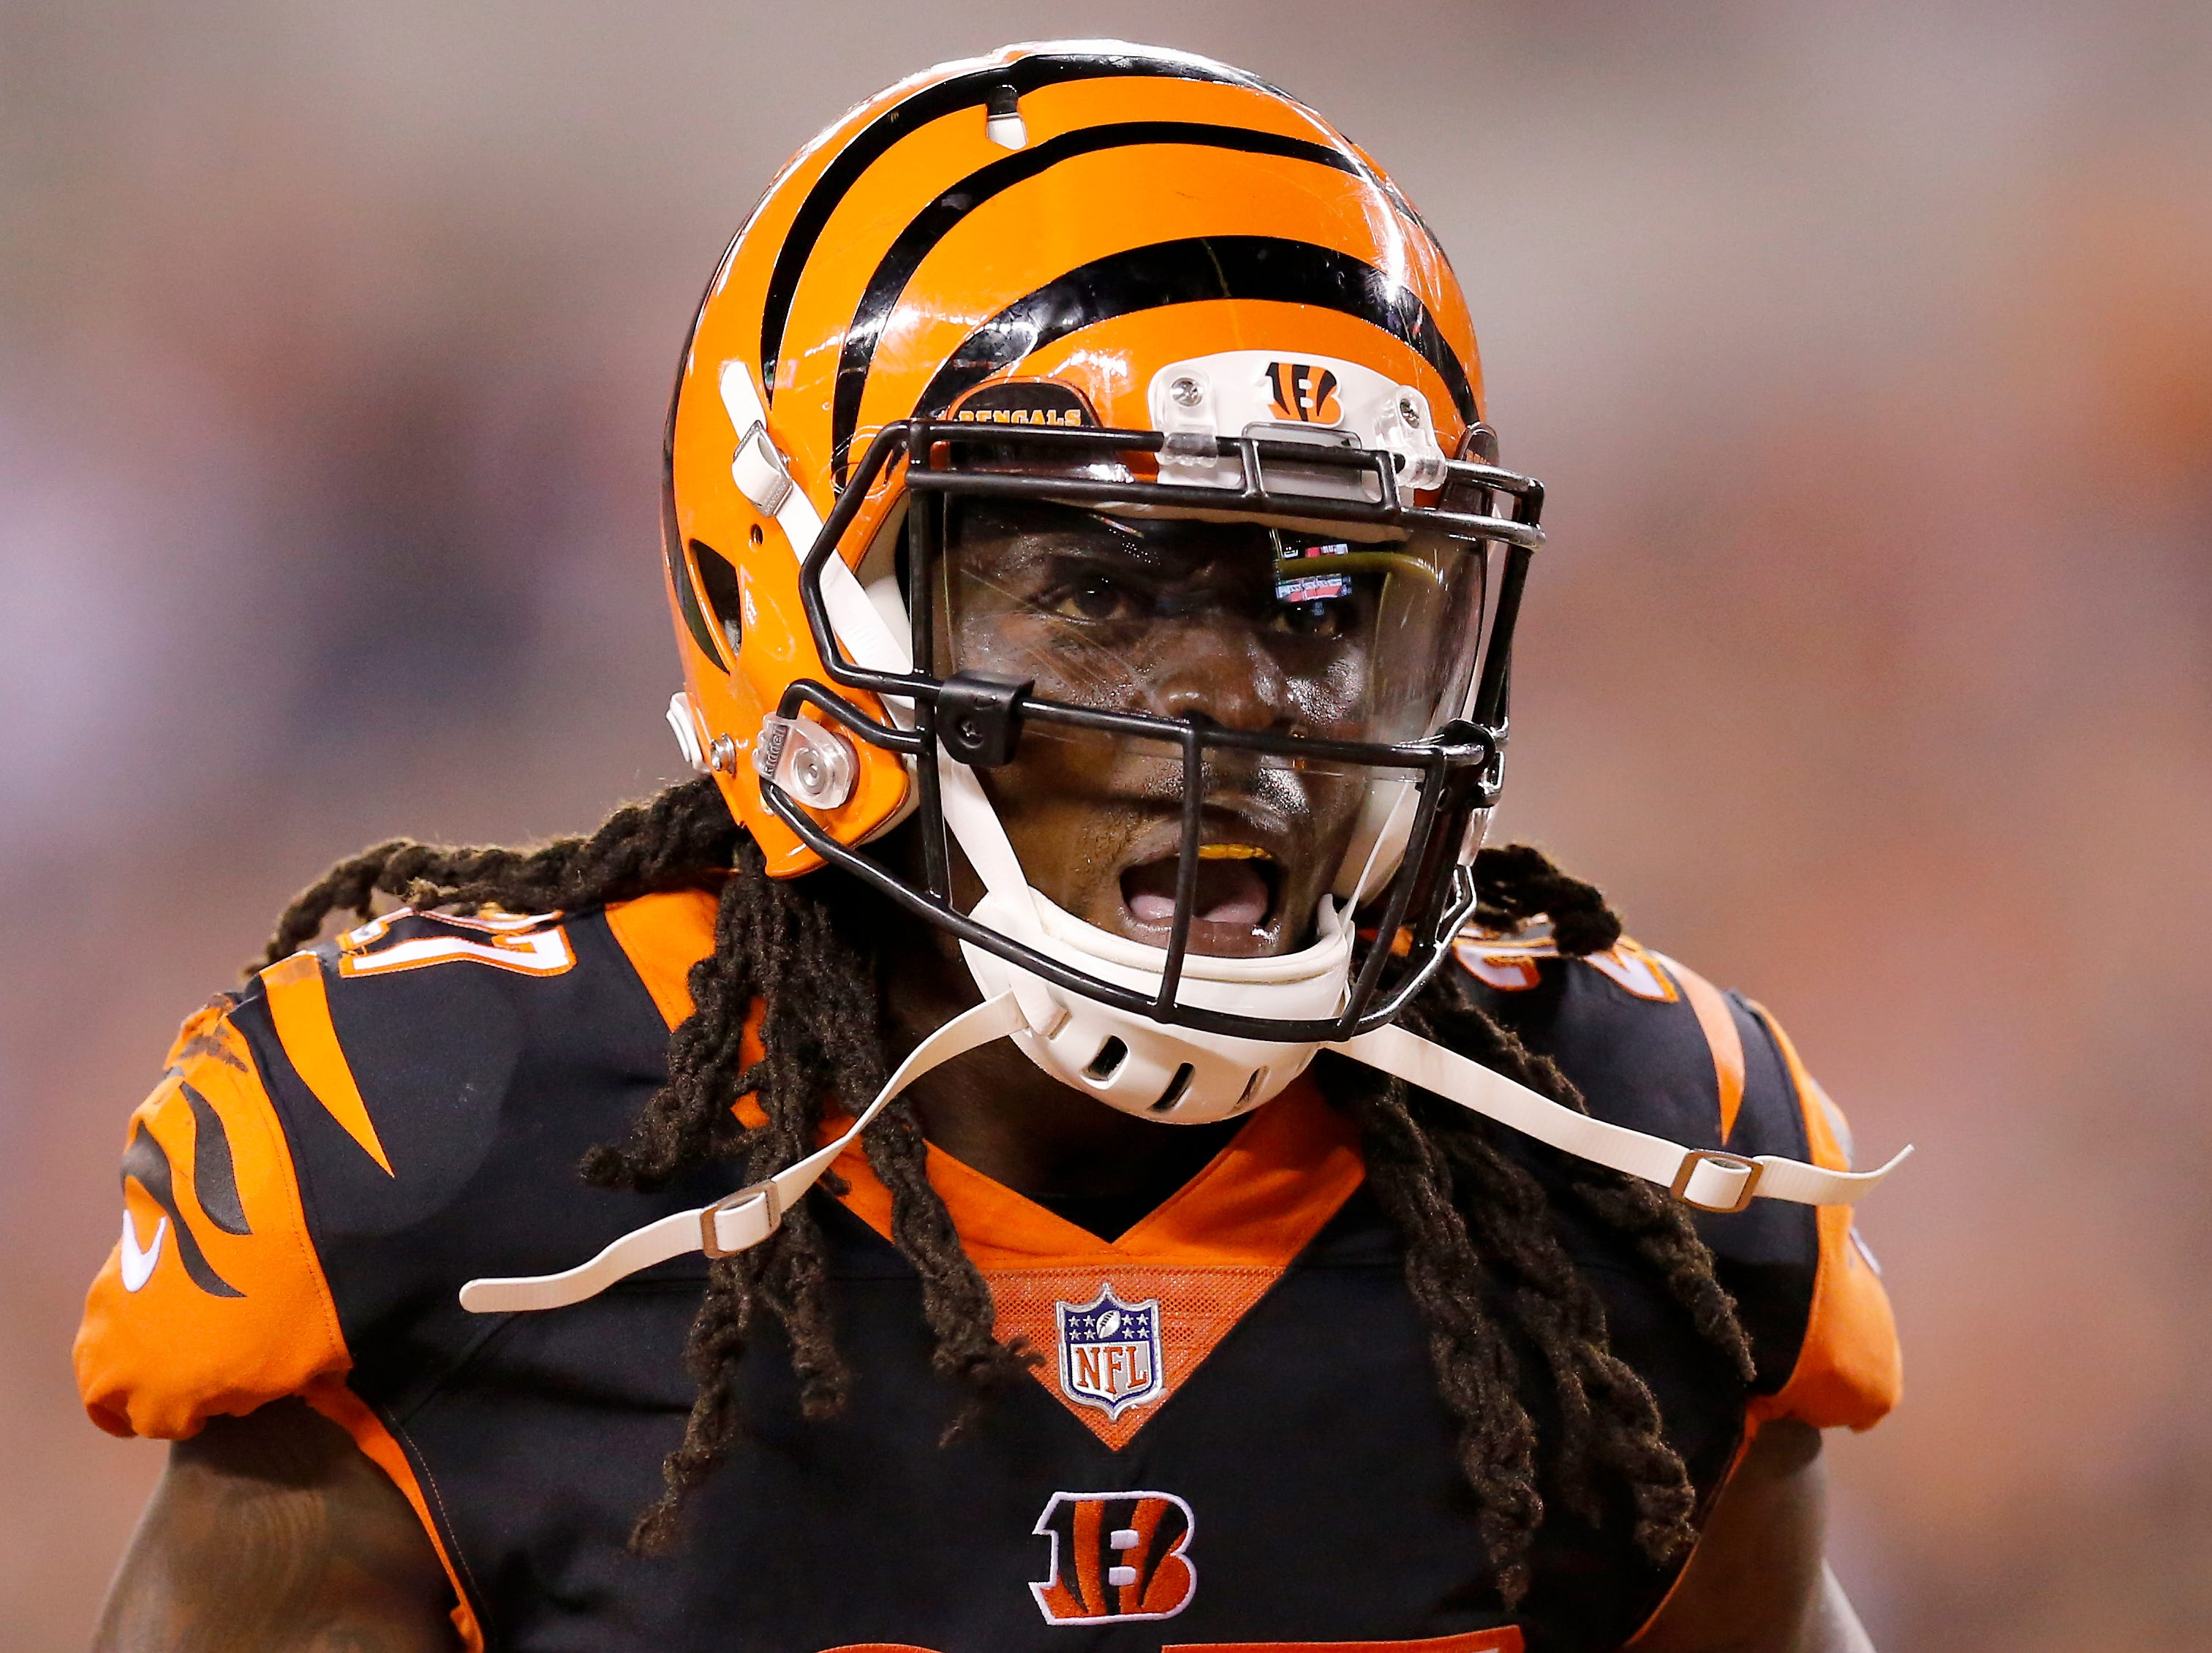 Cincinnati Bengals defensive back Dre Kirkpatrick (27) celebrates after a sack-fumble by defensive back Shawn Williams (36) in the fourth quarter of the NFL Week 2 game between the Cincinnati Bengals and the Baltimore Ravens at Paul Brown Stadium in downtown Cincinnati on Thursday, Sept. 13, 2018. The Bengals improved to 2-0 on the season with a 34-23 win over the Ravens.